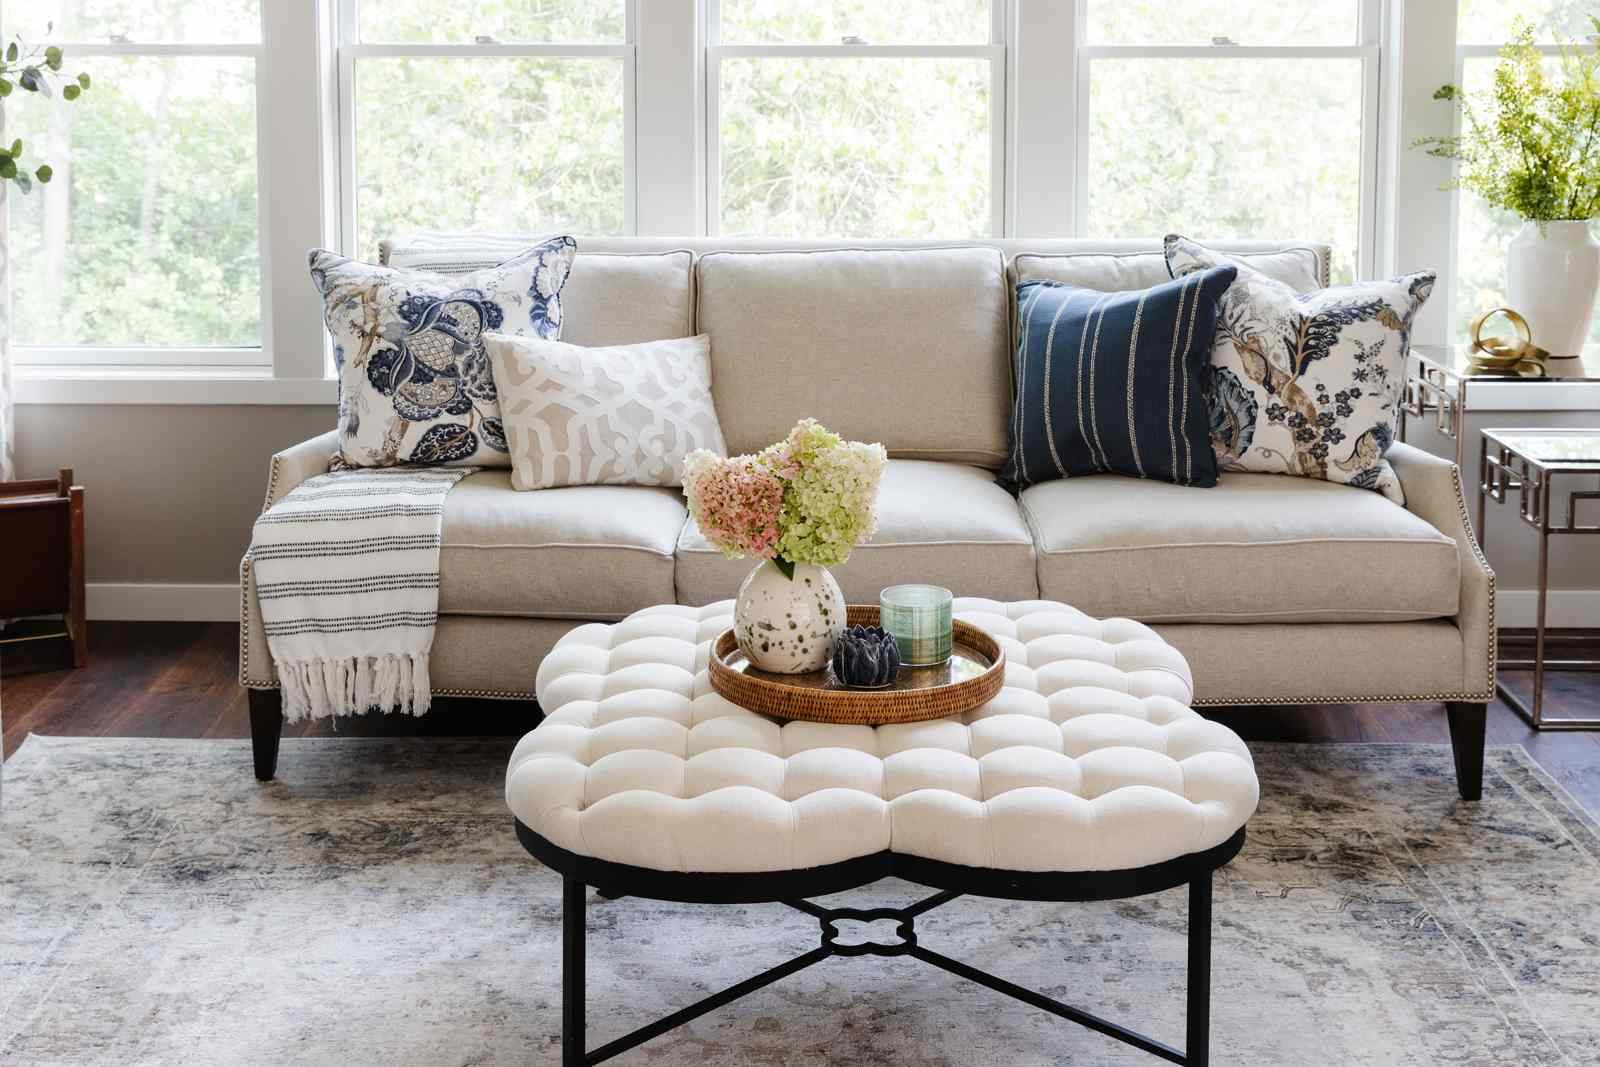 Sofa styled with patterned pillows, a few of which are chintz fabric